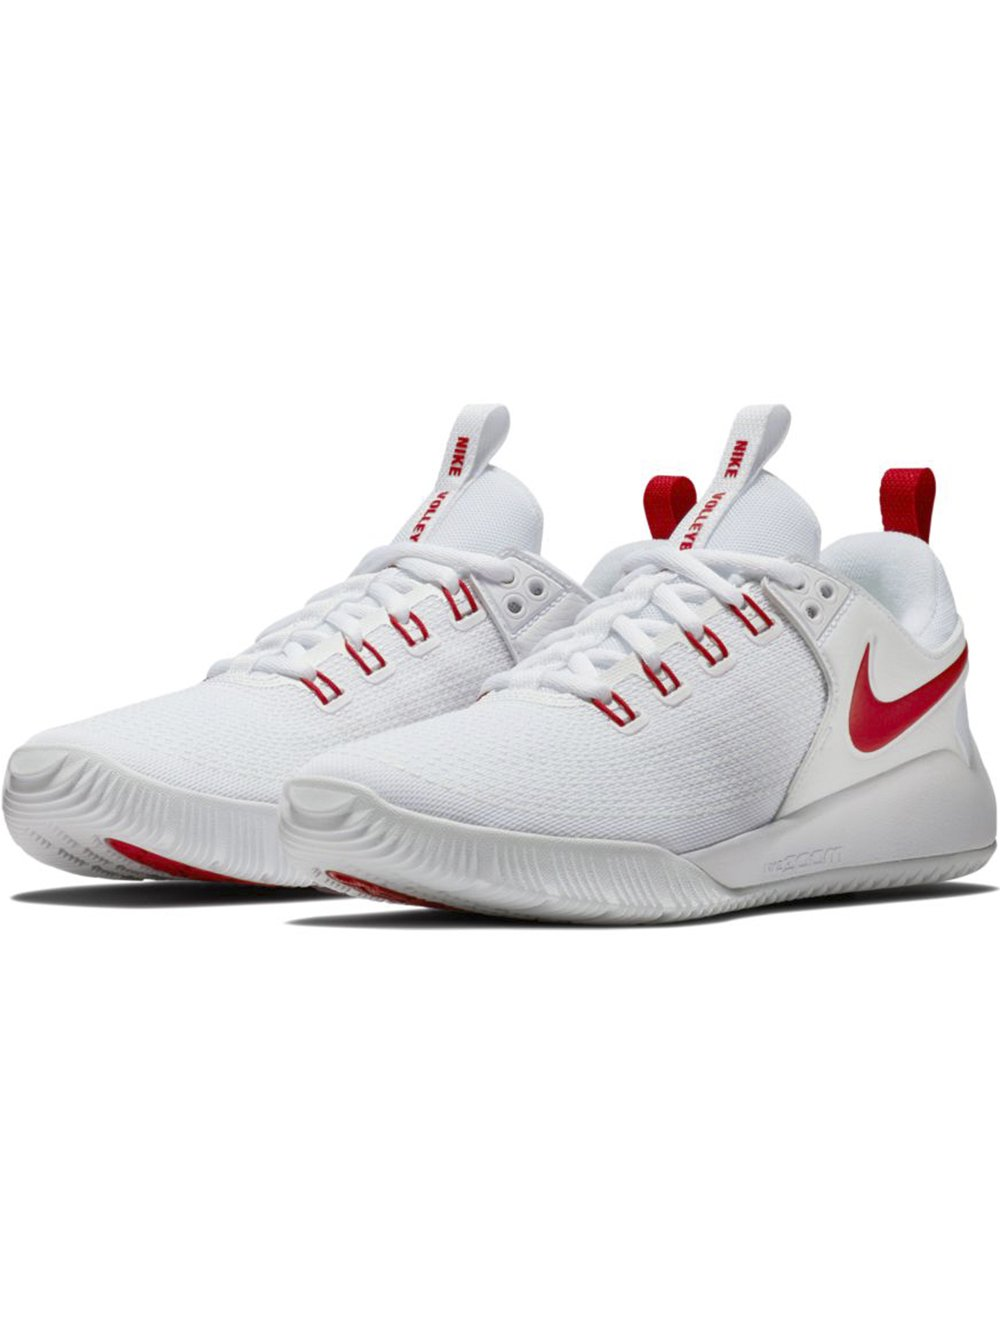 Nike Women's Zoom Hyperface 2 B(M) Volleyball Shoes B0761YY16W 8.5 B(M) 2 US|White/University Red 46c030